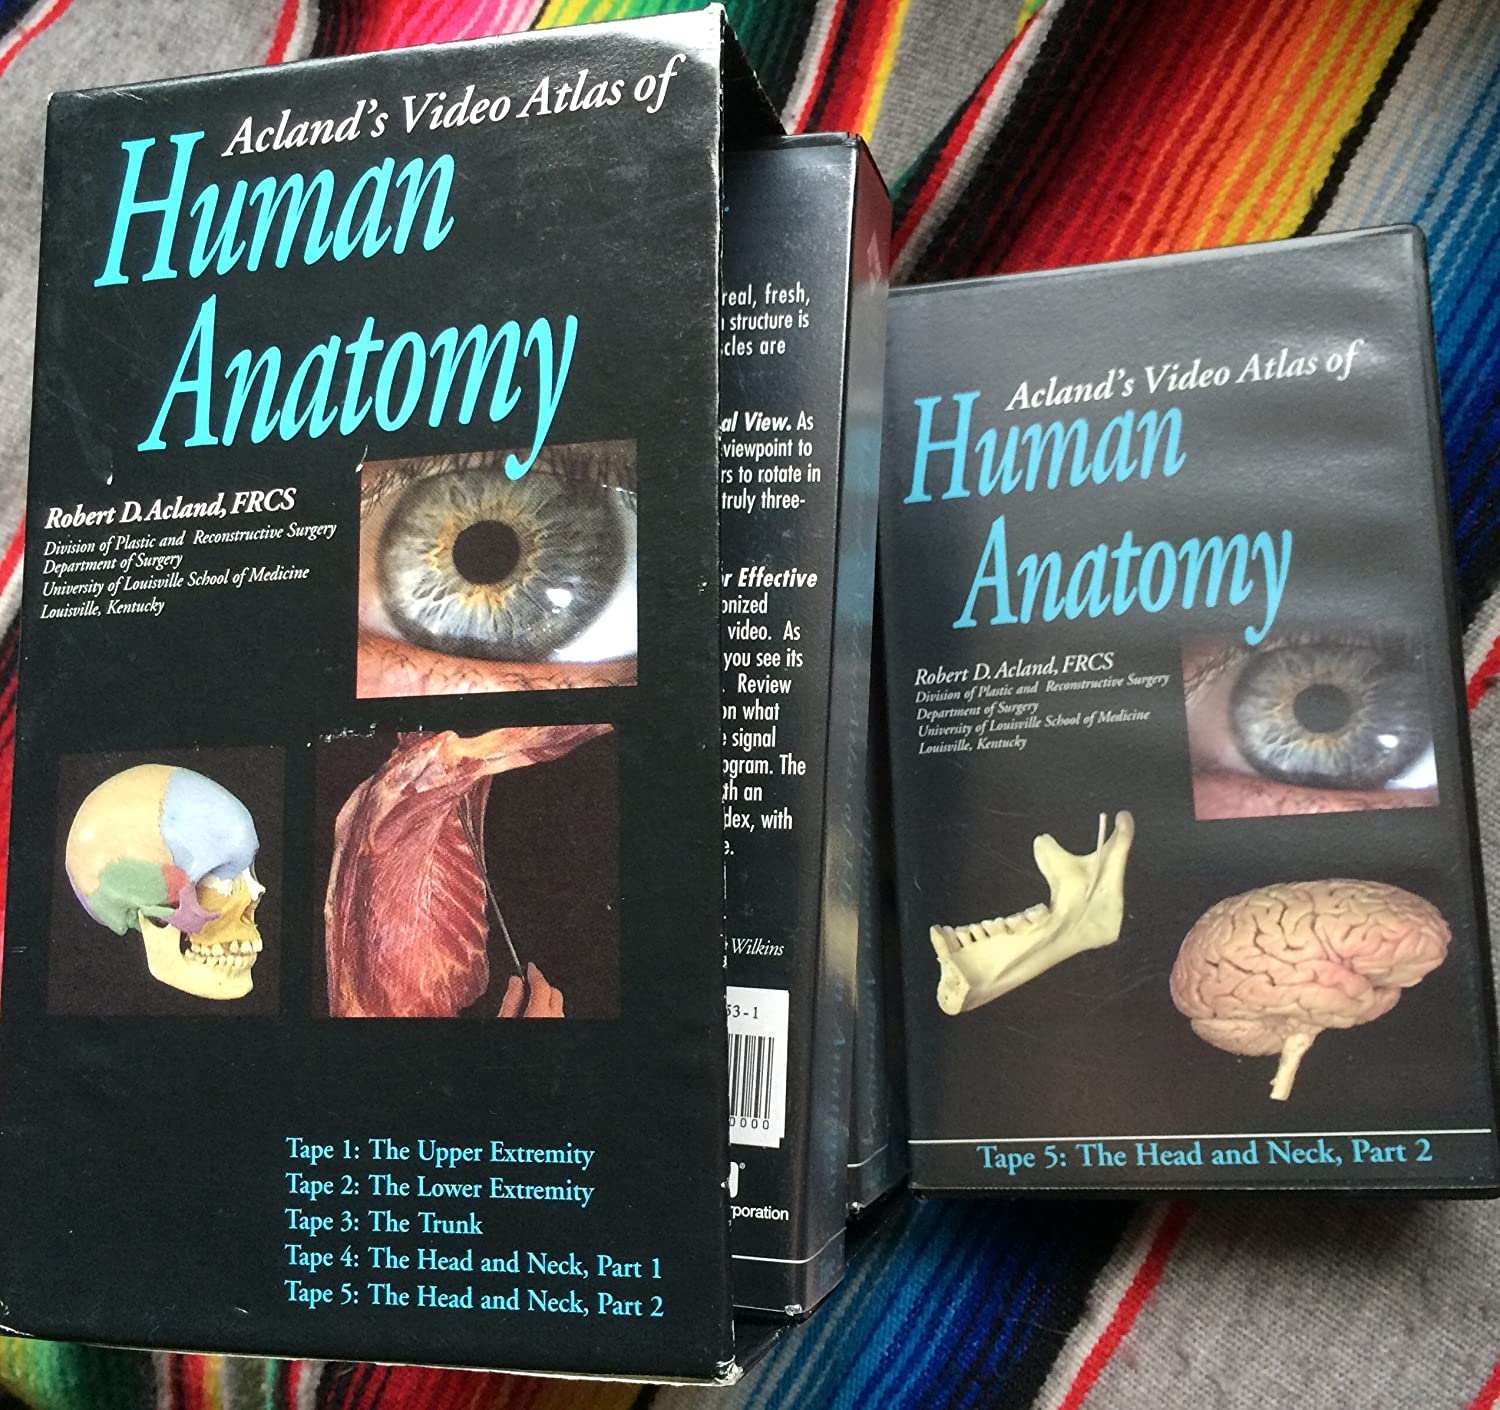 Amazon.com: Acland\'s Video Atlas of Human Anatomy: Movies & TV